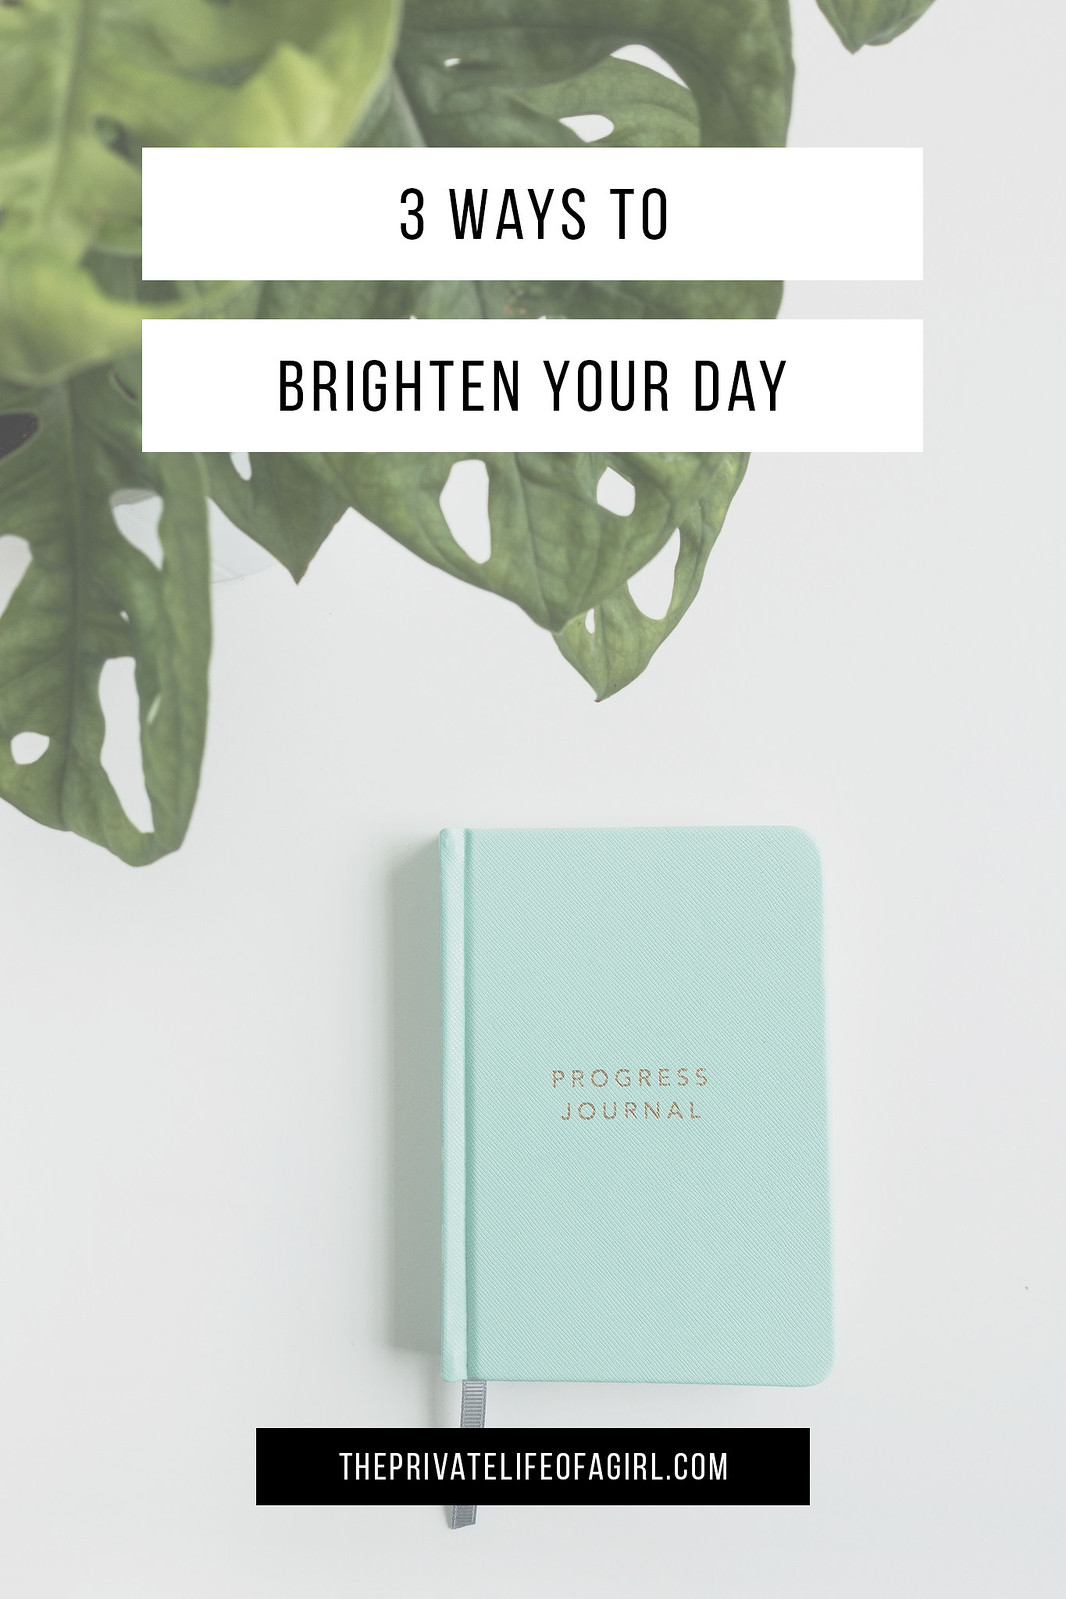 Brighten Your Day, 3 Ways